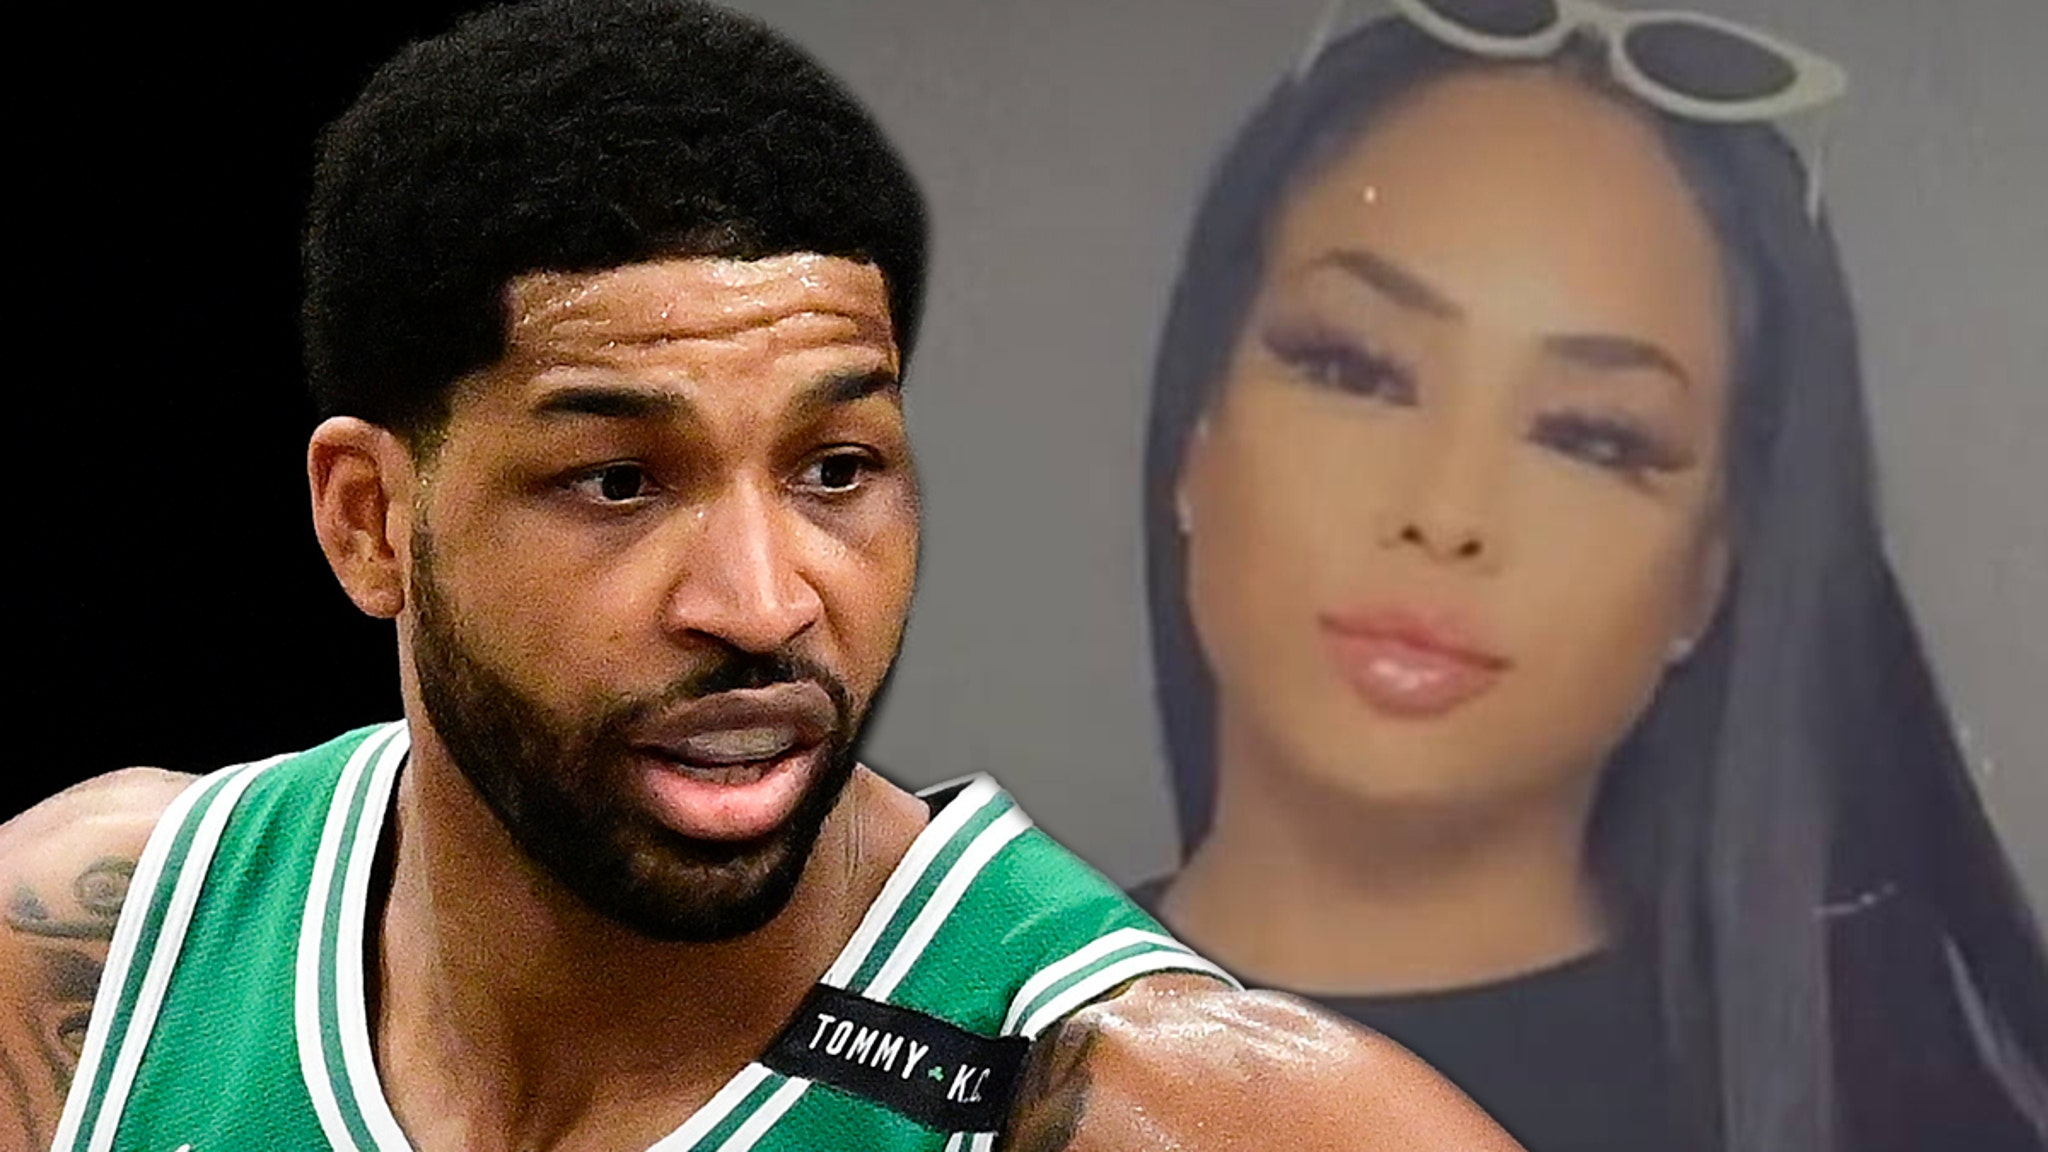 Tristan Thompson On Verge of Scoring Legal Win Against Paternity Accuser